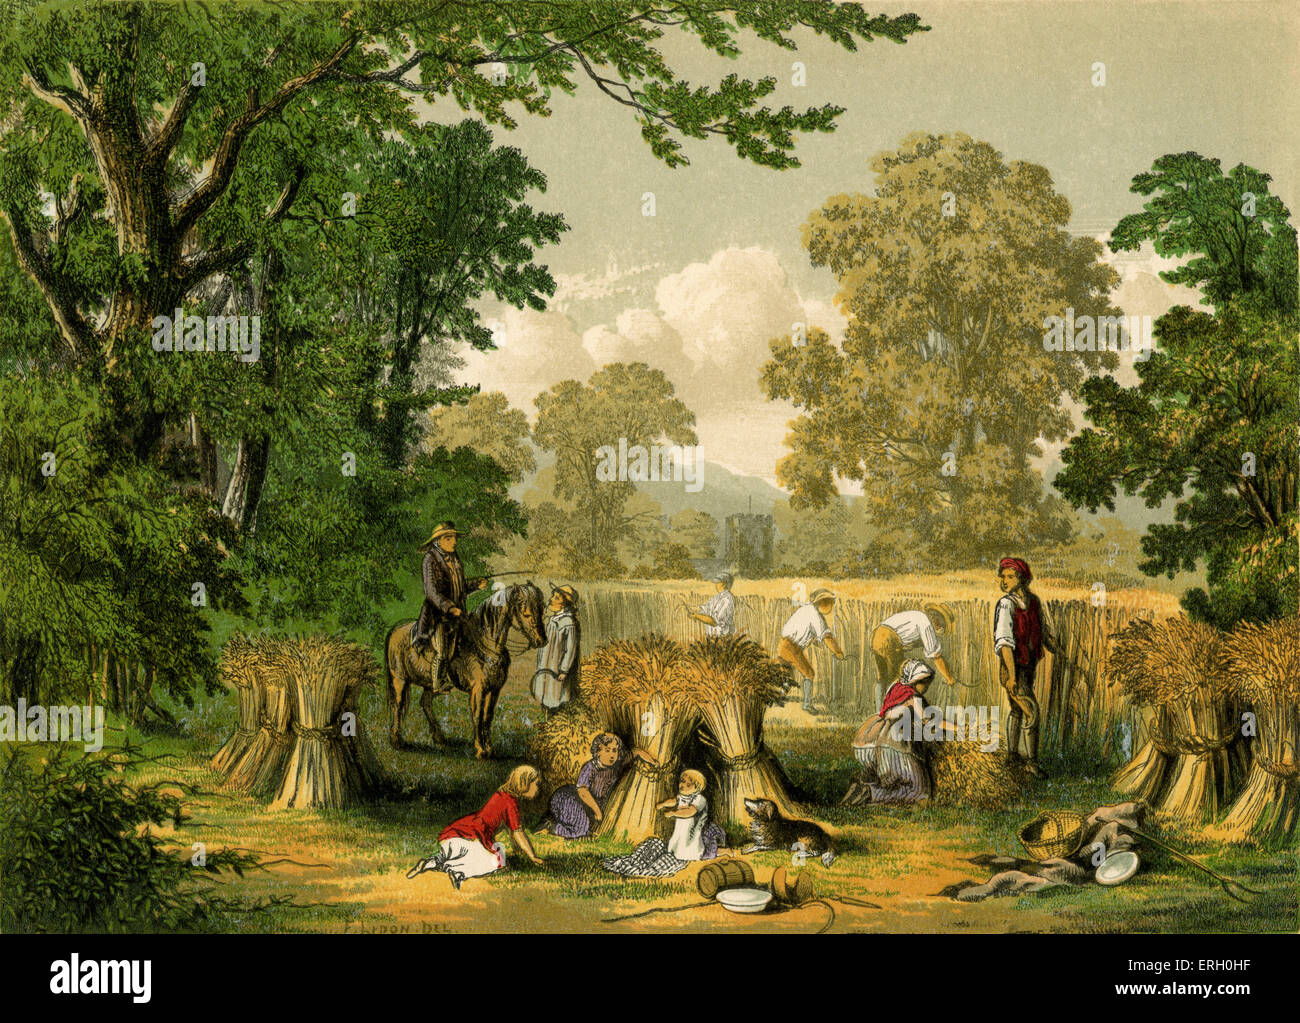 "elegy written in a country churchyard by thomas gray essay Free essay: thomas gray wrote ""elegy written in a country churchyard"" in 1742, shortly after the death of his close friend richard west who died from."